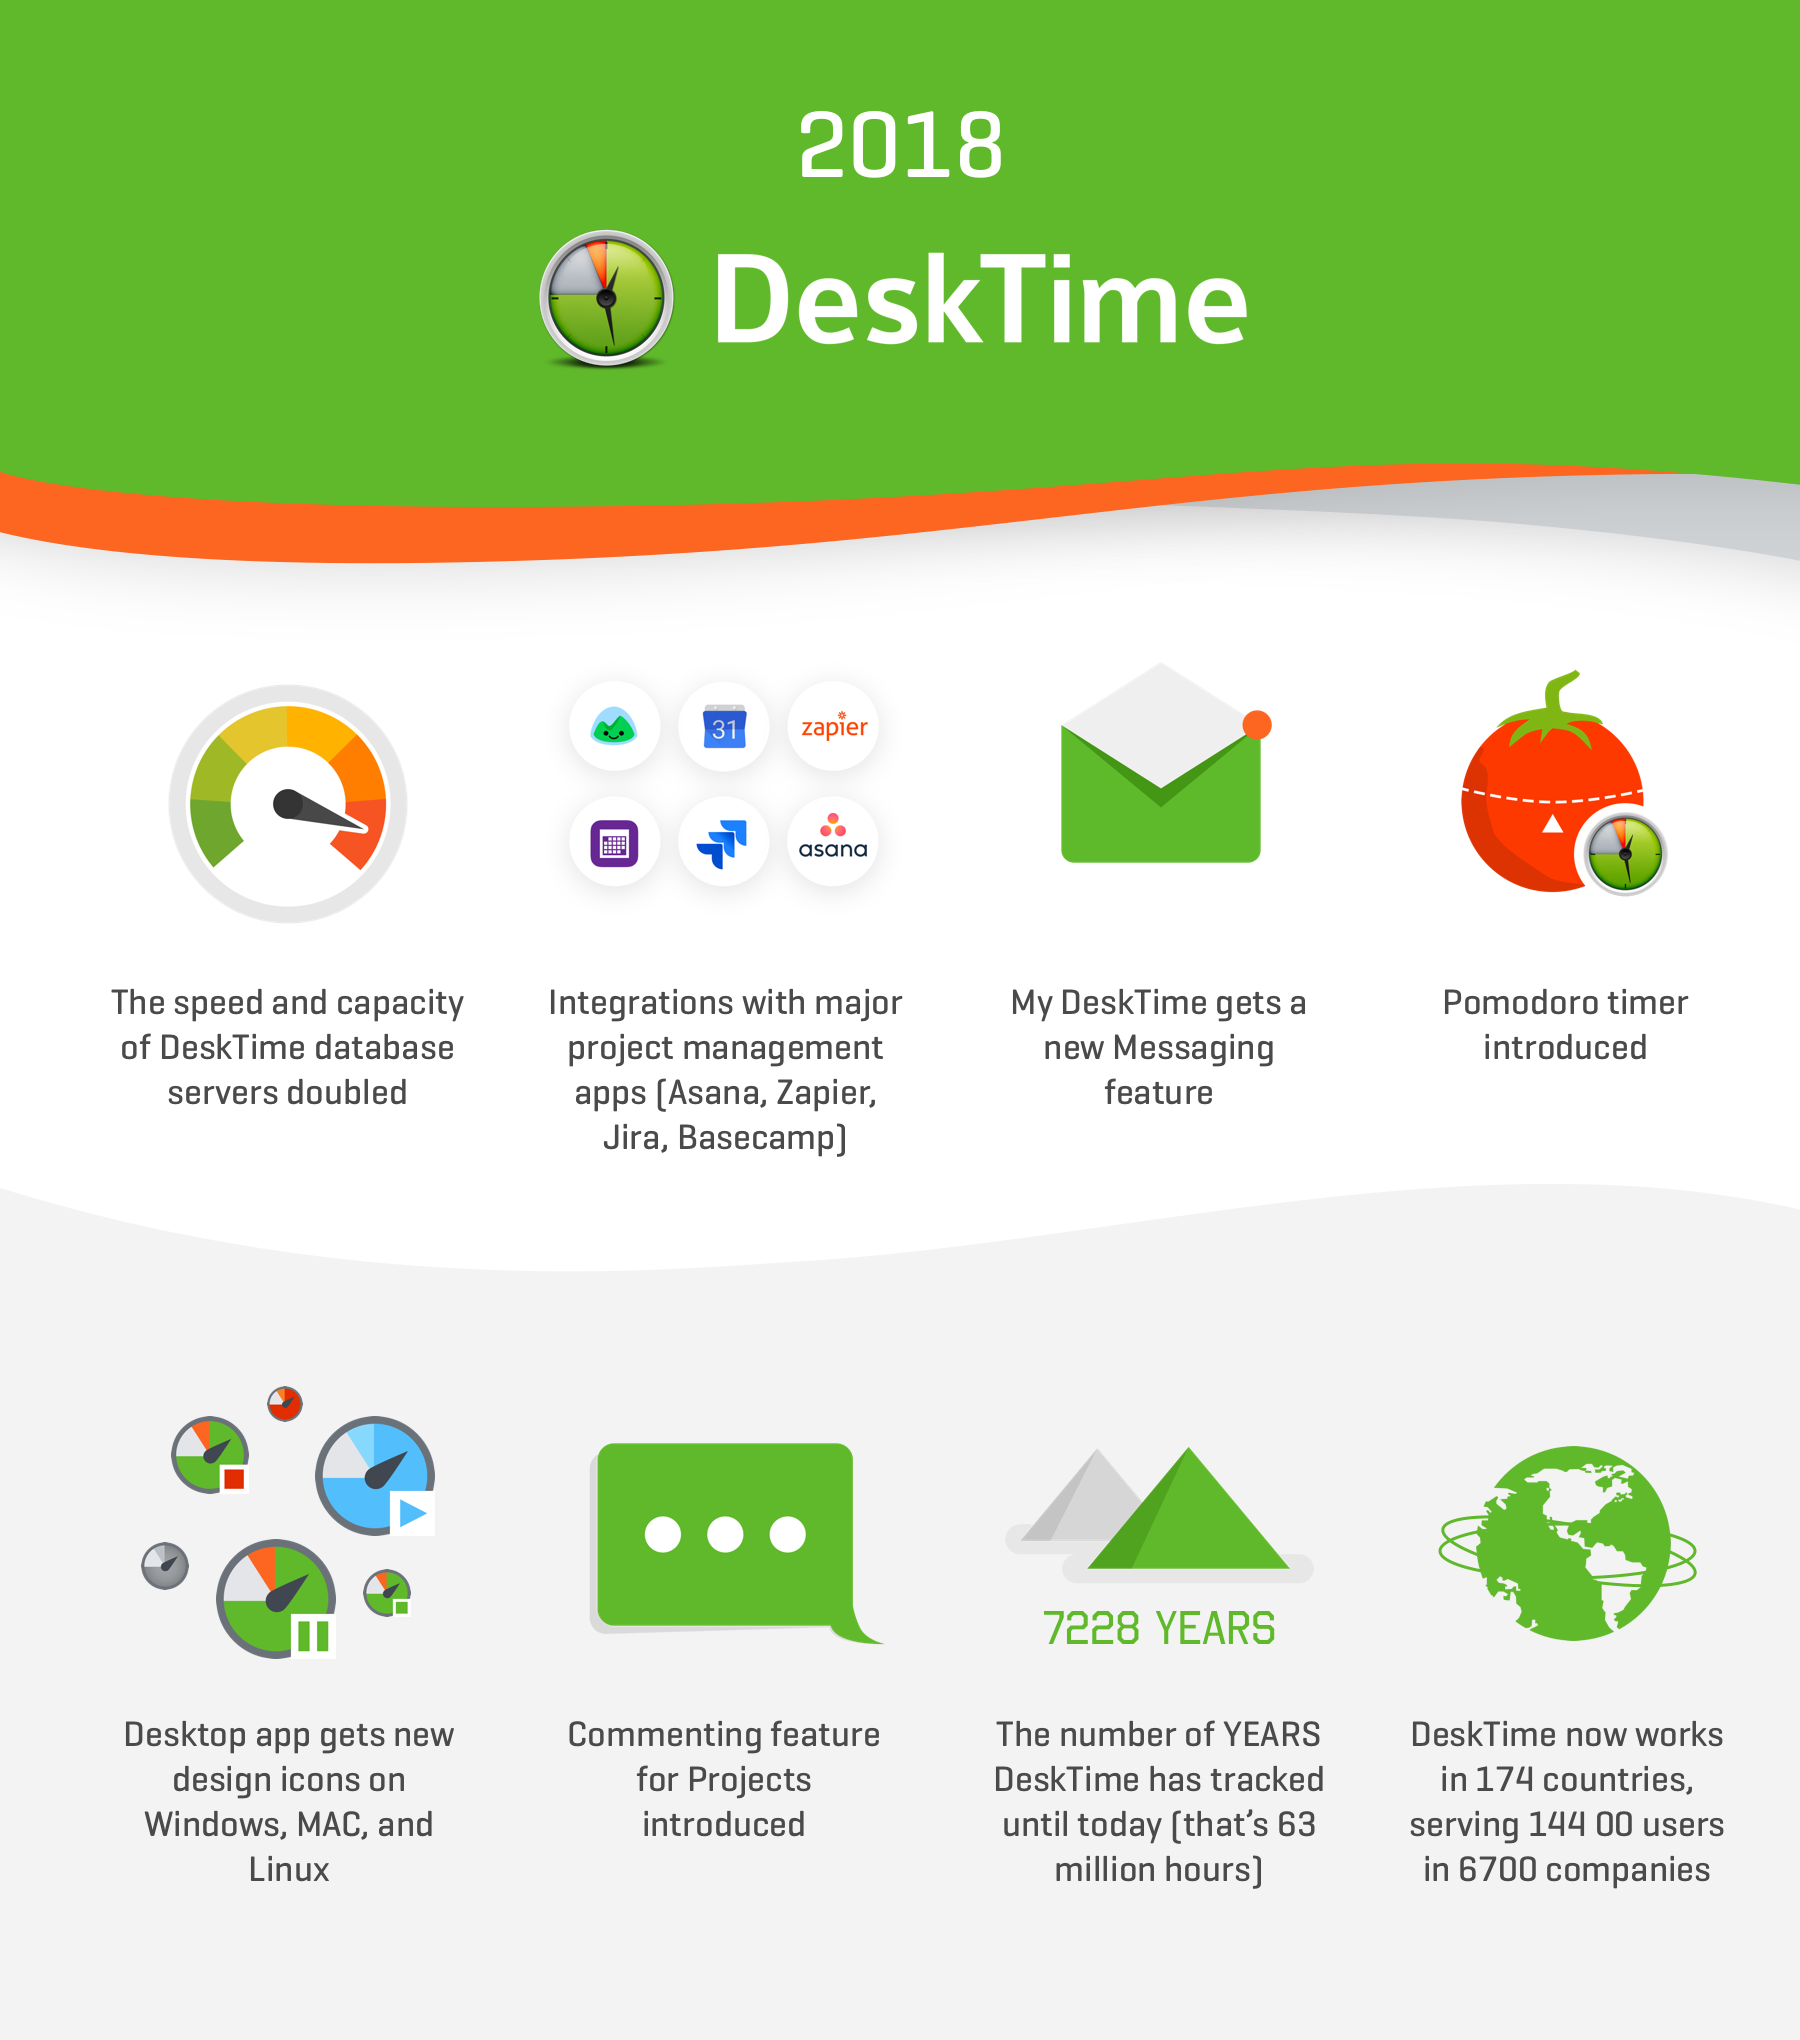 DeskTime time tracking milestones